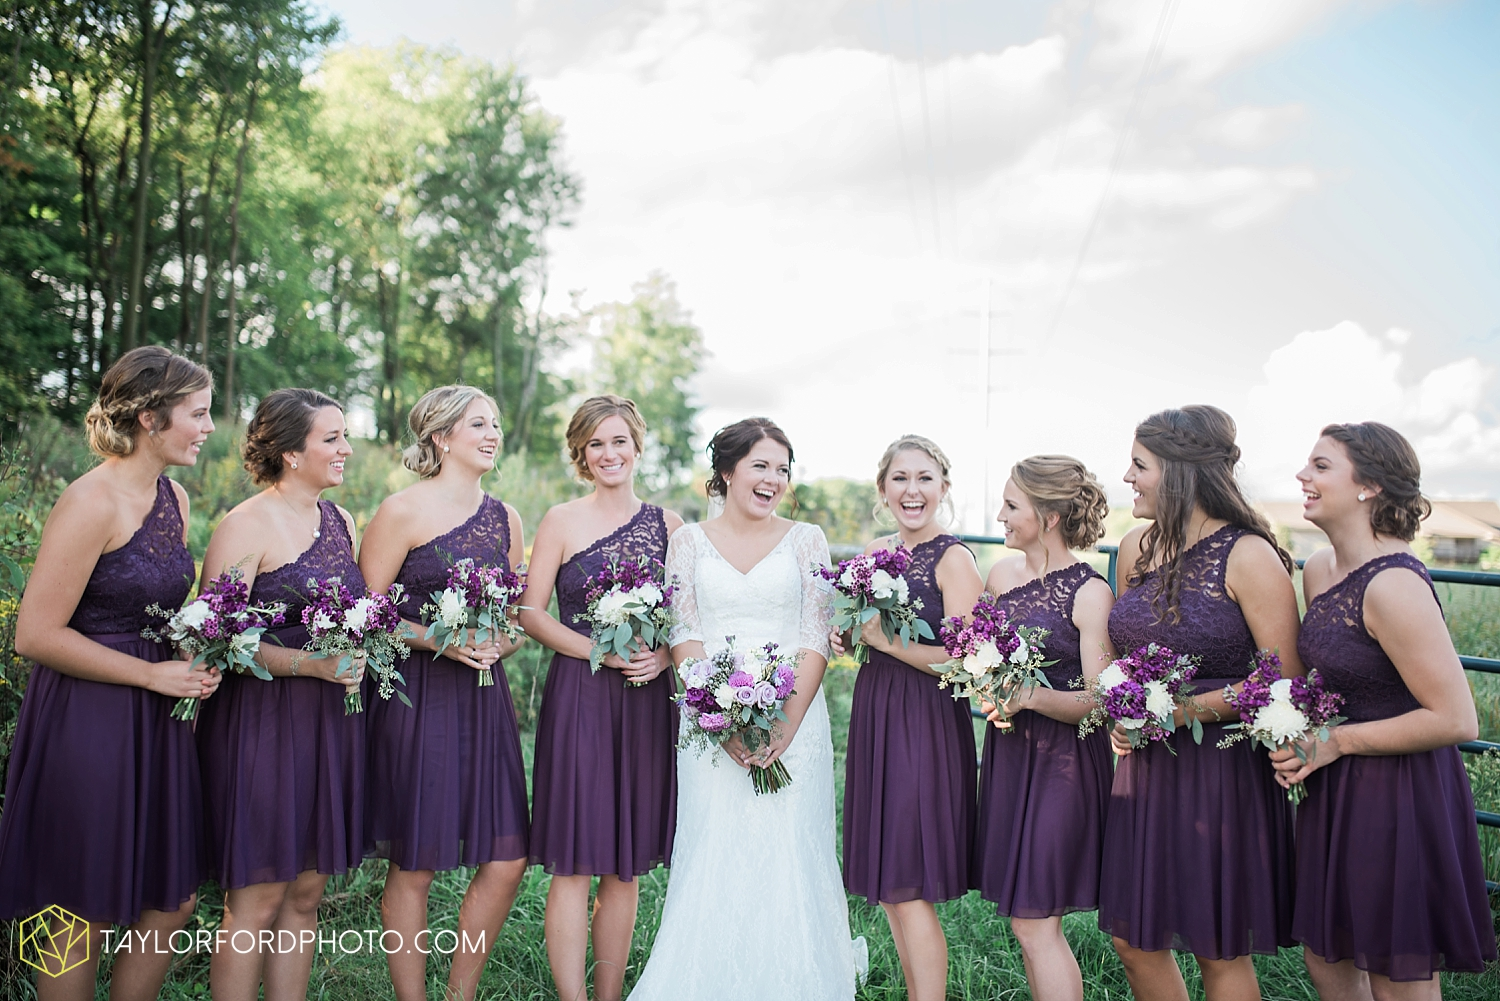 van_wert_ohio_fort_wayne_indiana_wedding_photographer_taylor_ford_cerutis_catering_2828.jpg